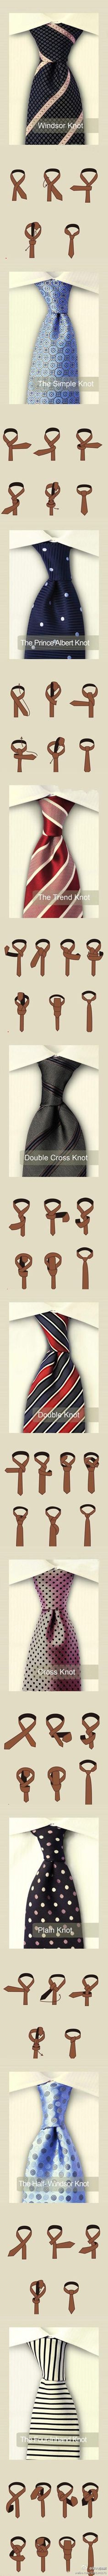 The 5 ways to tie a tie